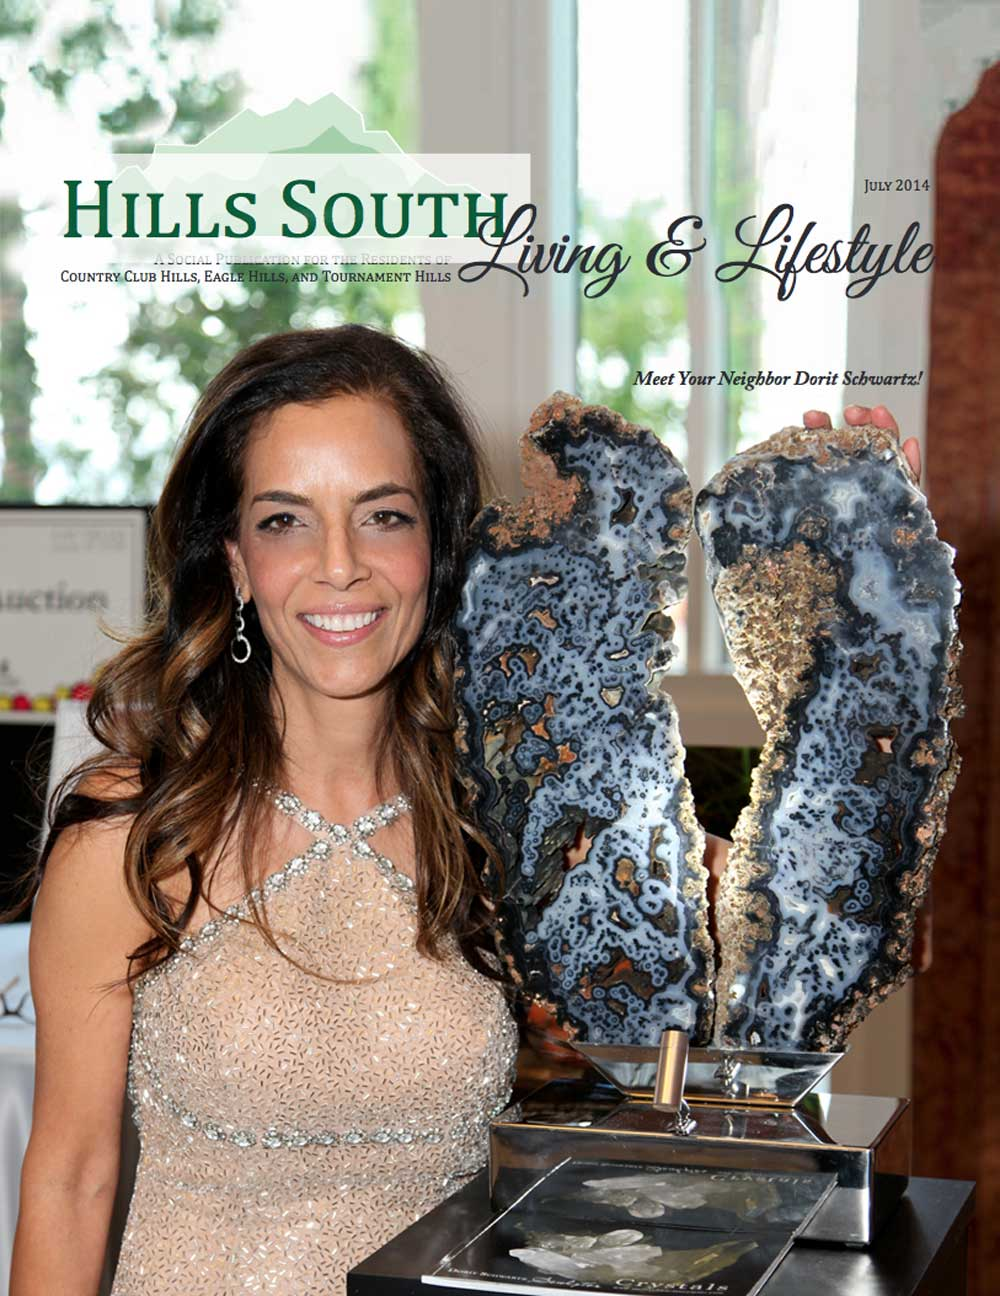 Hills South Magazine Dorit Schwartz